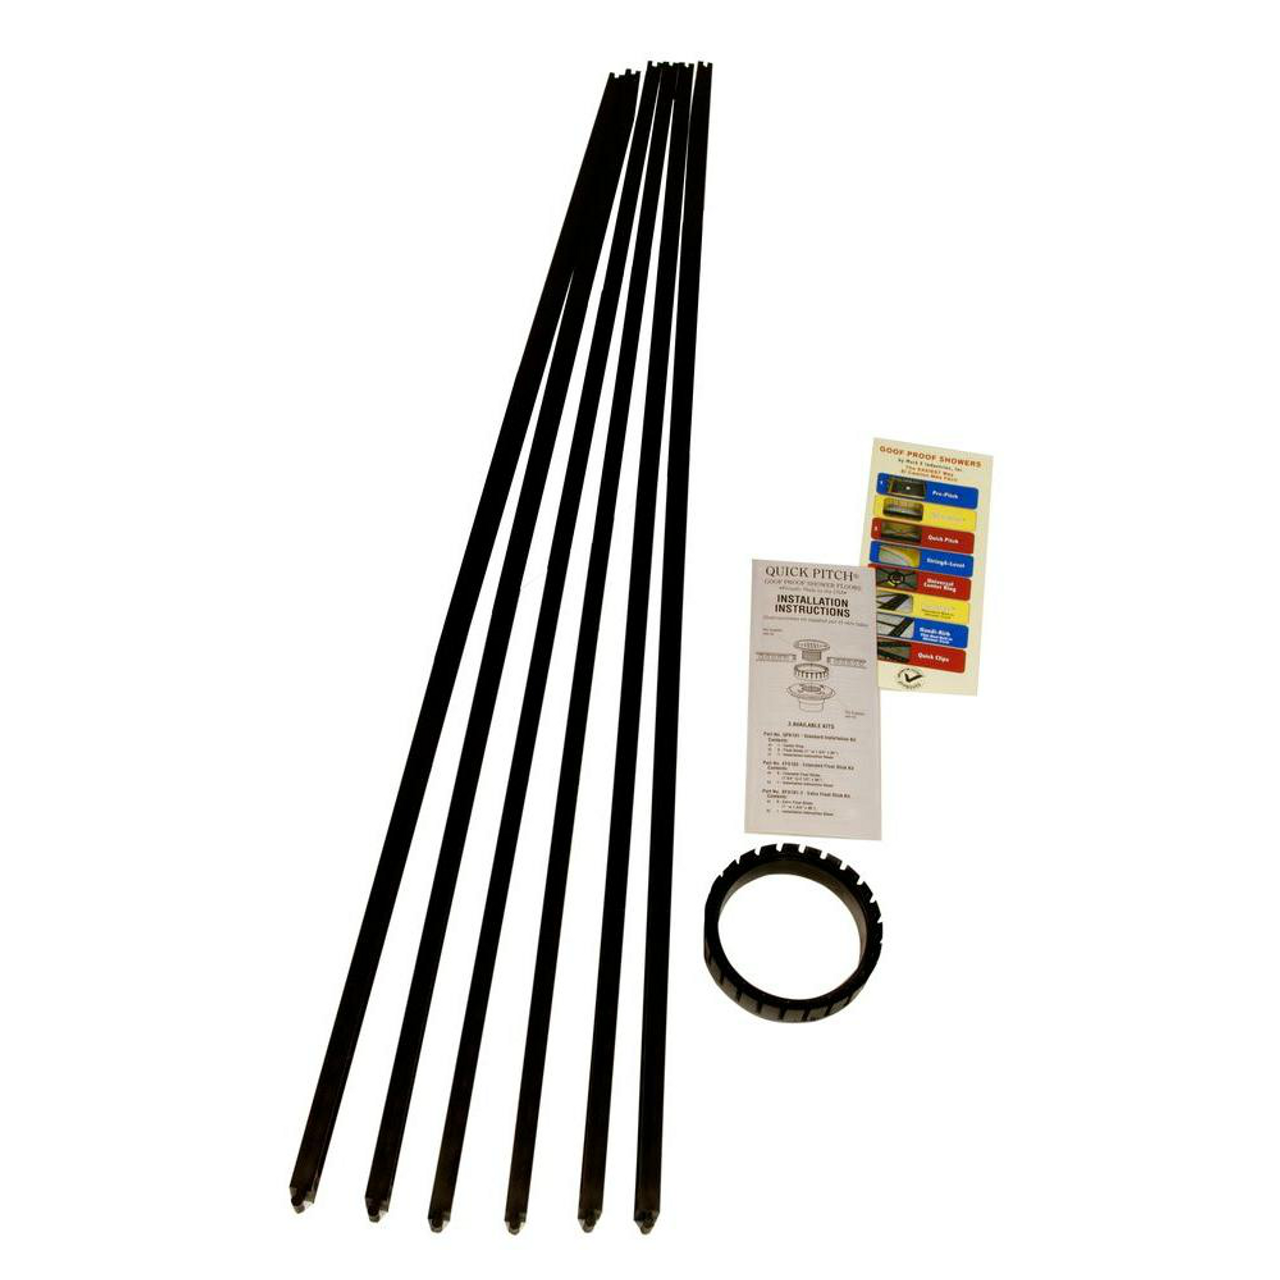 Quick pitch standard kit quick pitch standard kit includes 6 standard quick pitch float sticks and 4 center ring sciox Gallery